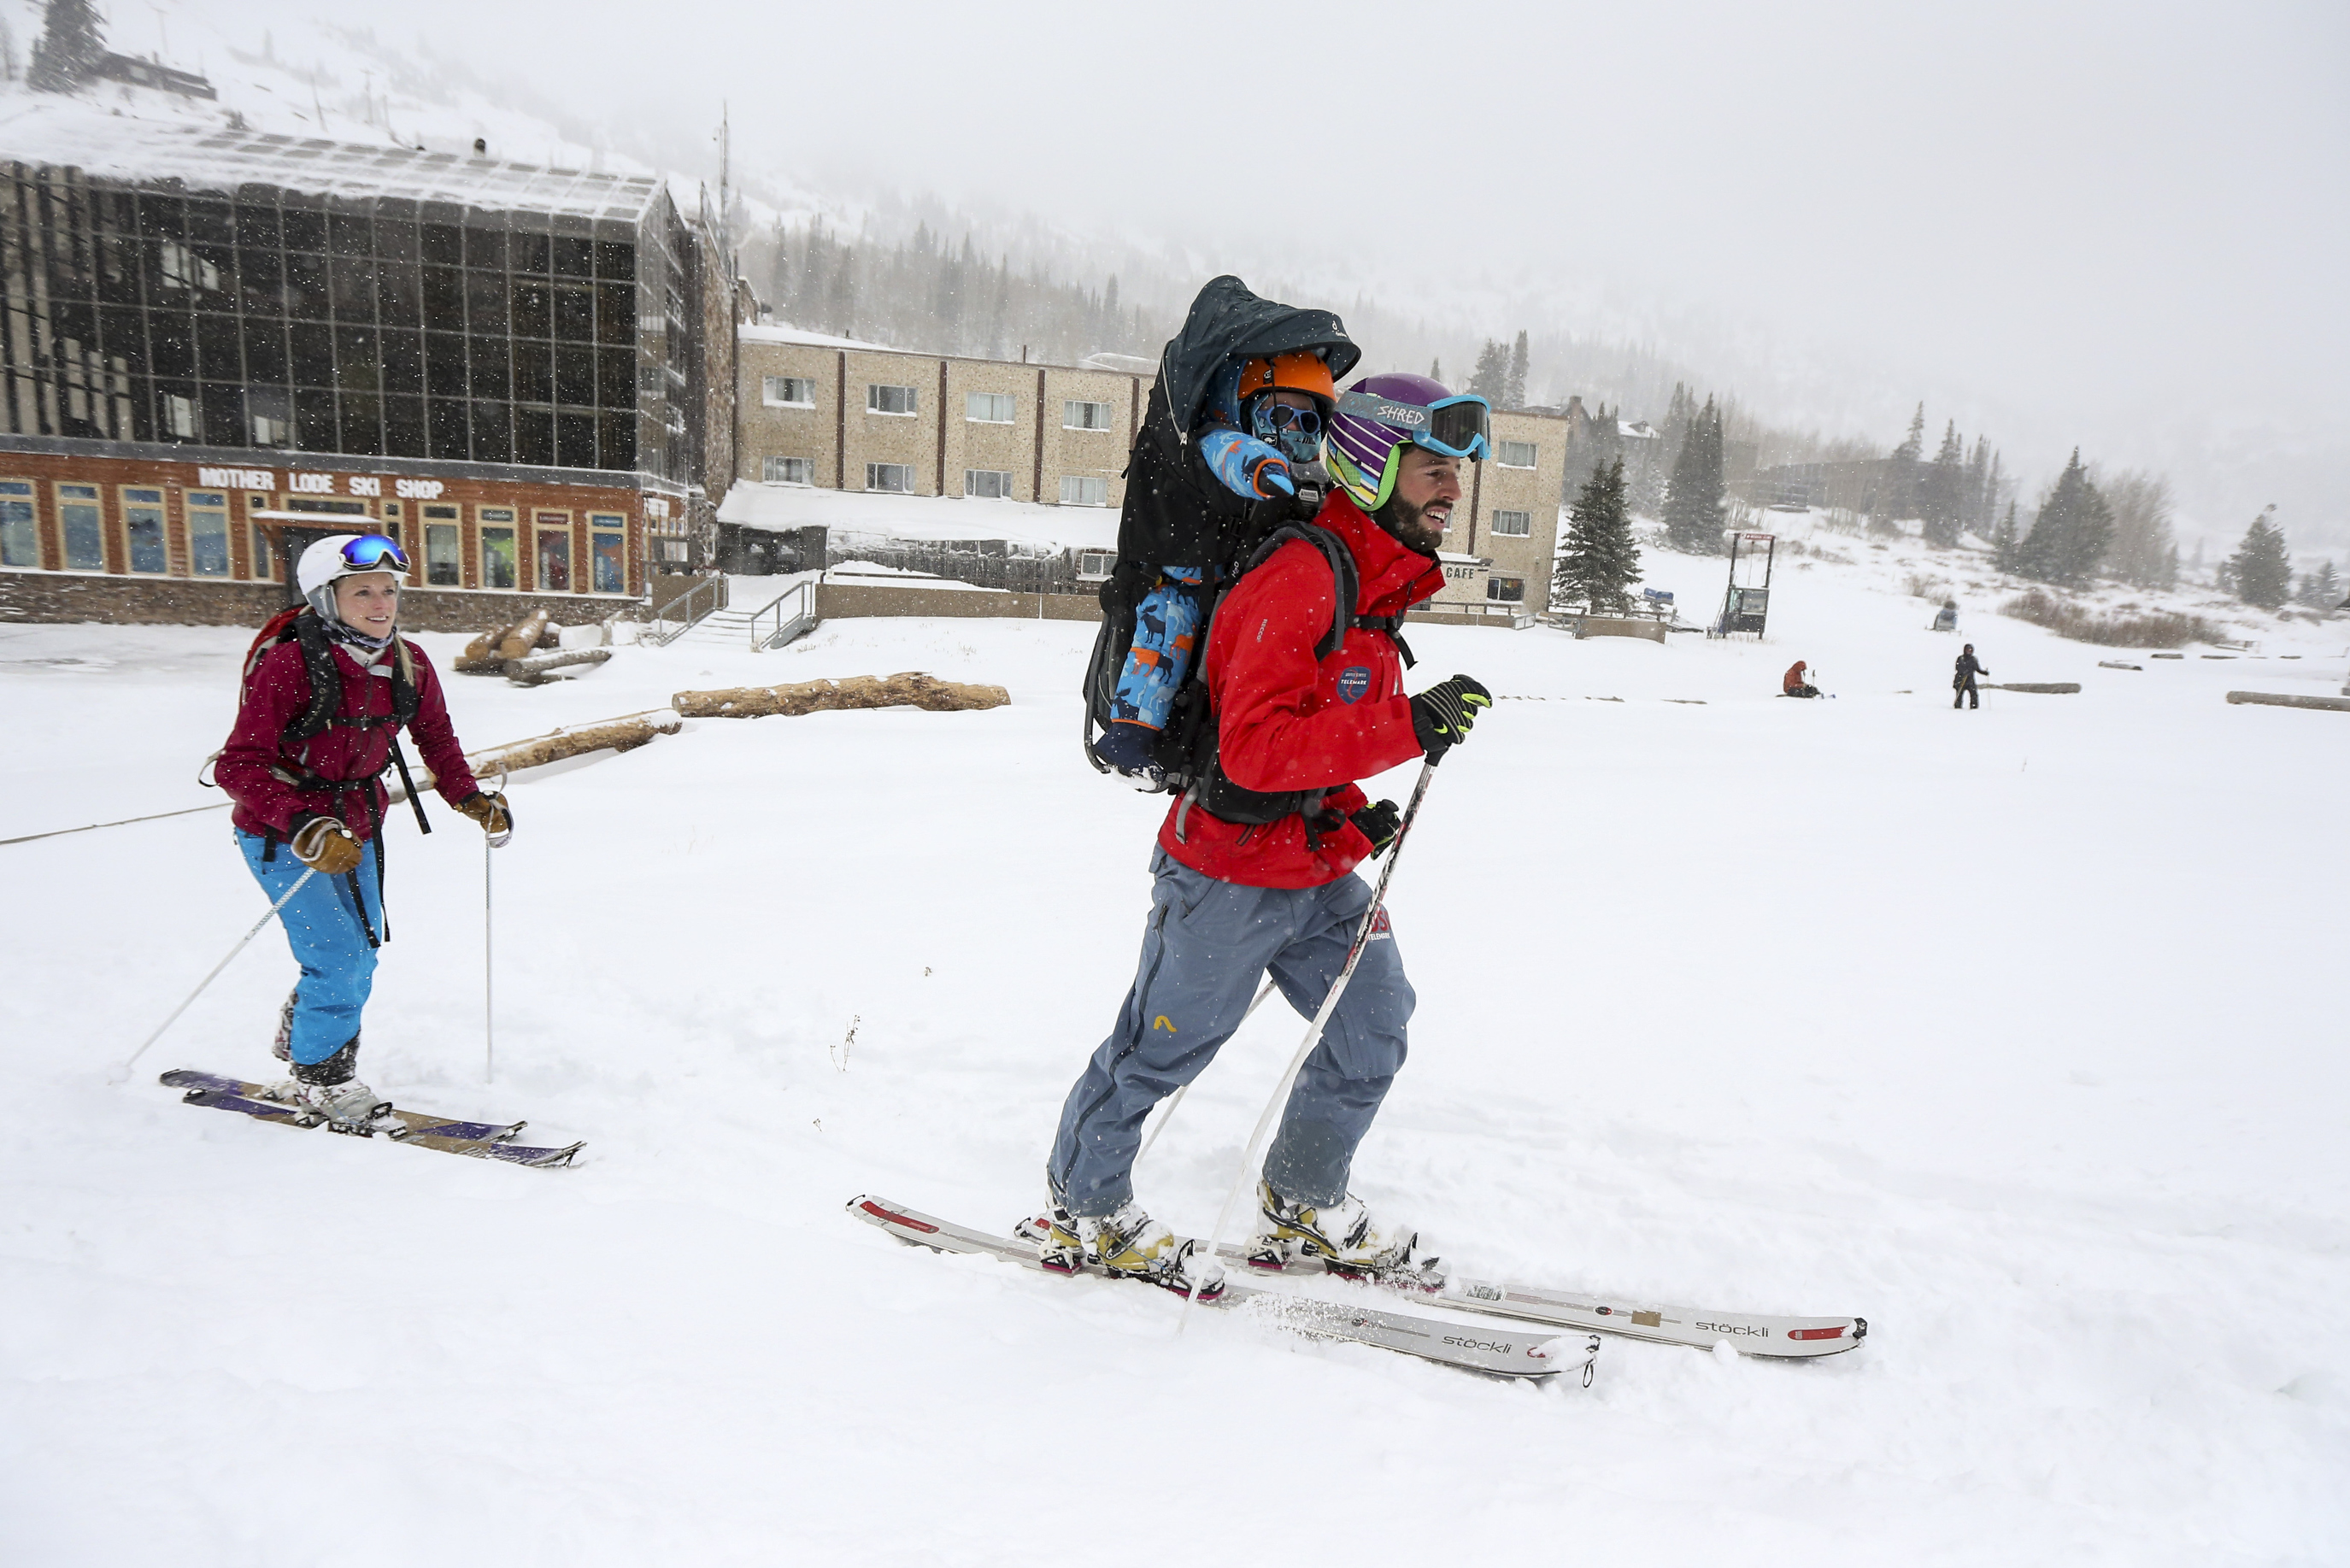 Garrett Long, front, his wife Melind Long and their son Tucker, 17 months, head up the hill from the Wildcat base area at Alta Ski Resort in Little Cottonwood Canyon to enjoy the first substantial snowfall of the year on Sunday, Oct. 20, 2019.